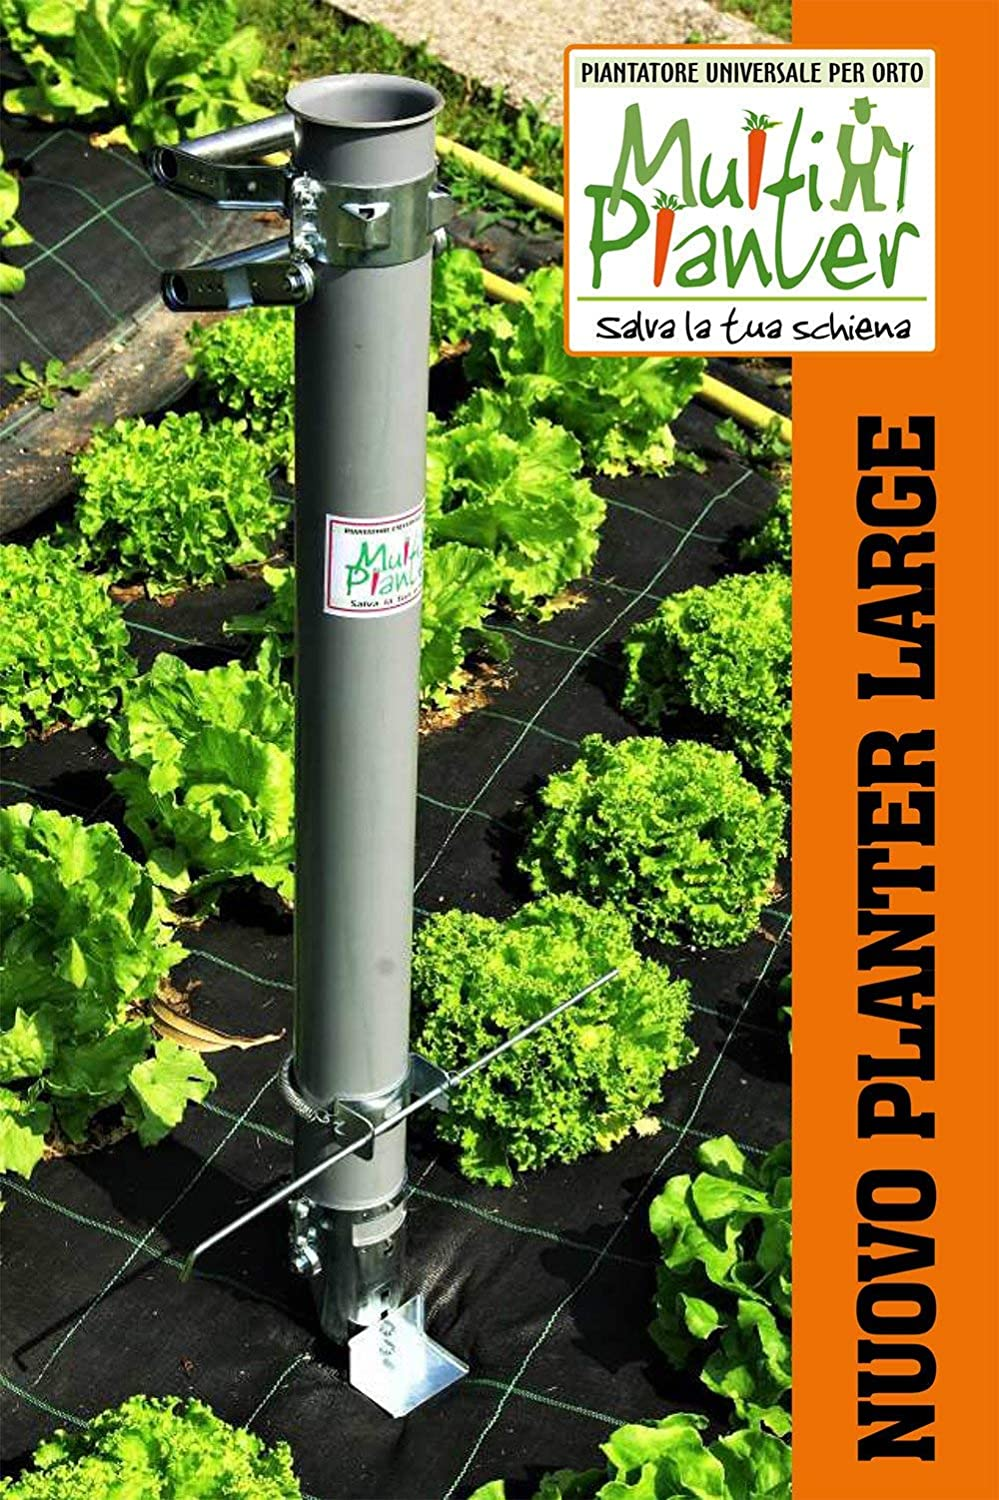 Bulbs and Small Plants Quickly and Easily with no Back Pain Large Multiplanter Lightweight Bulb Planter Plants Seeds